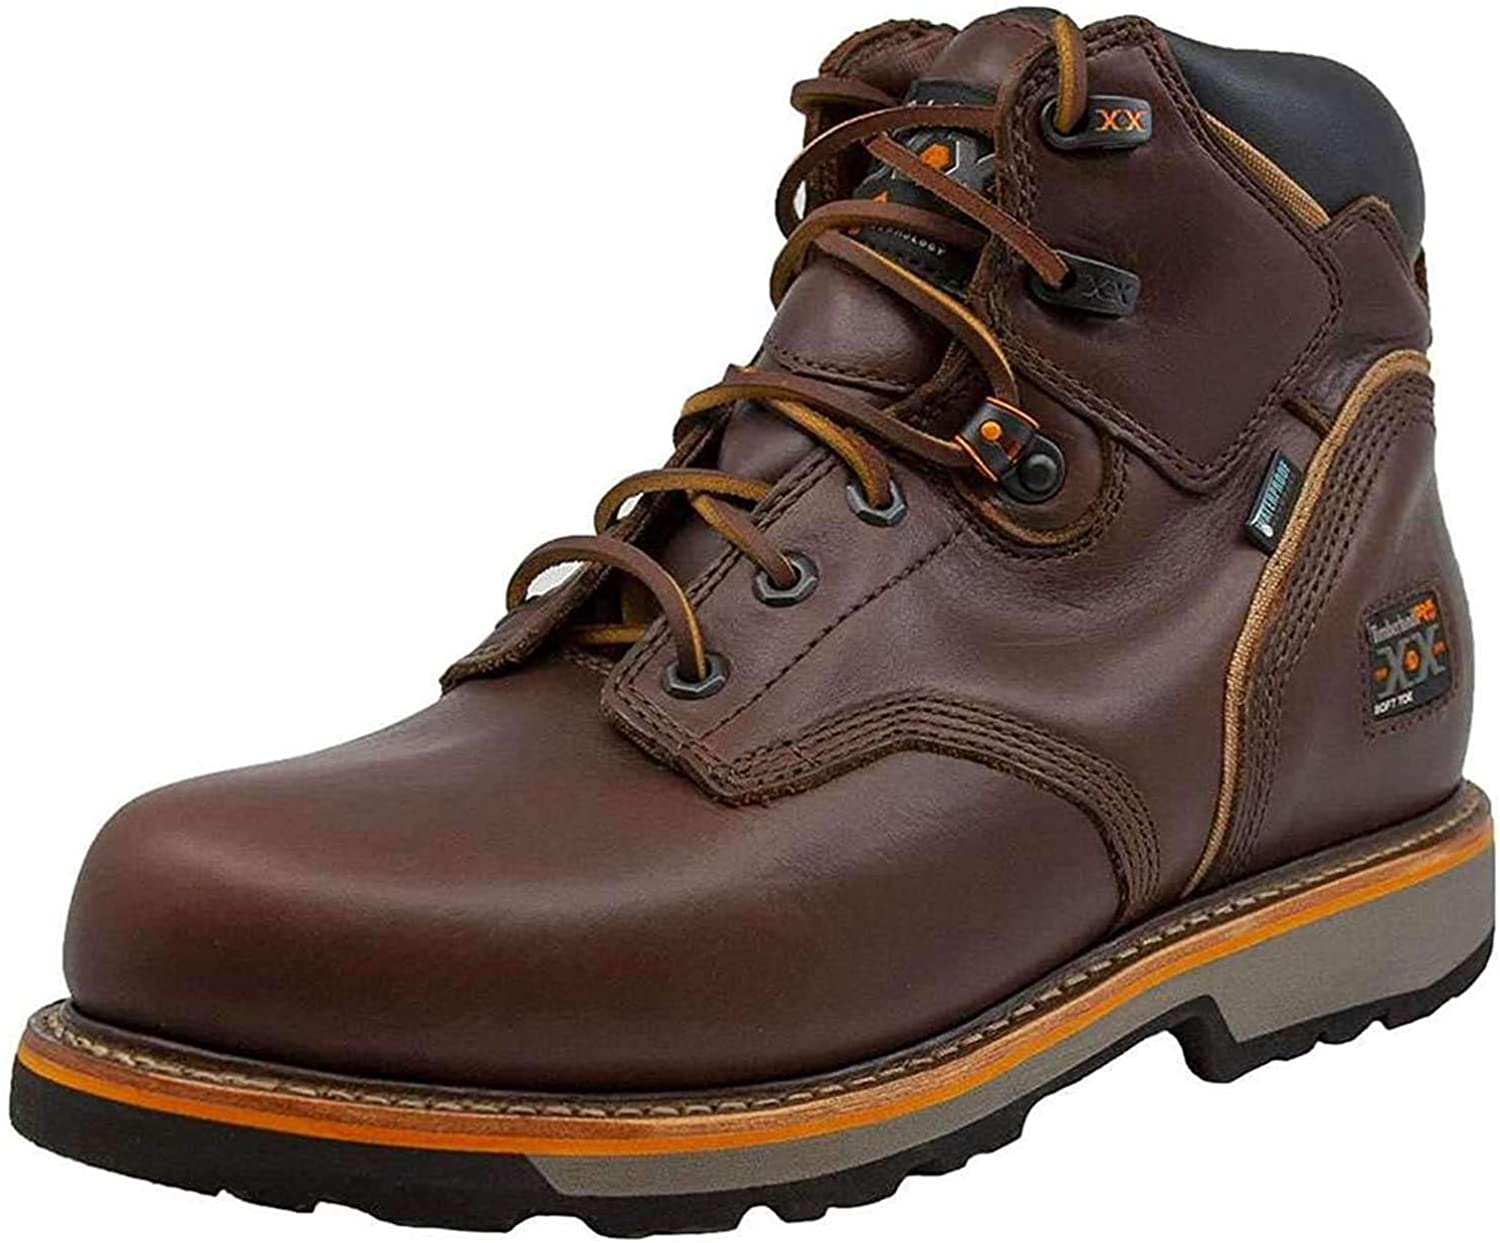 Timberland PRO Men's 6 Inch Pit Waterproof Boss Max 5 ☆ very popular 63% OFF Boot